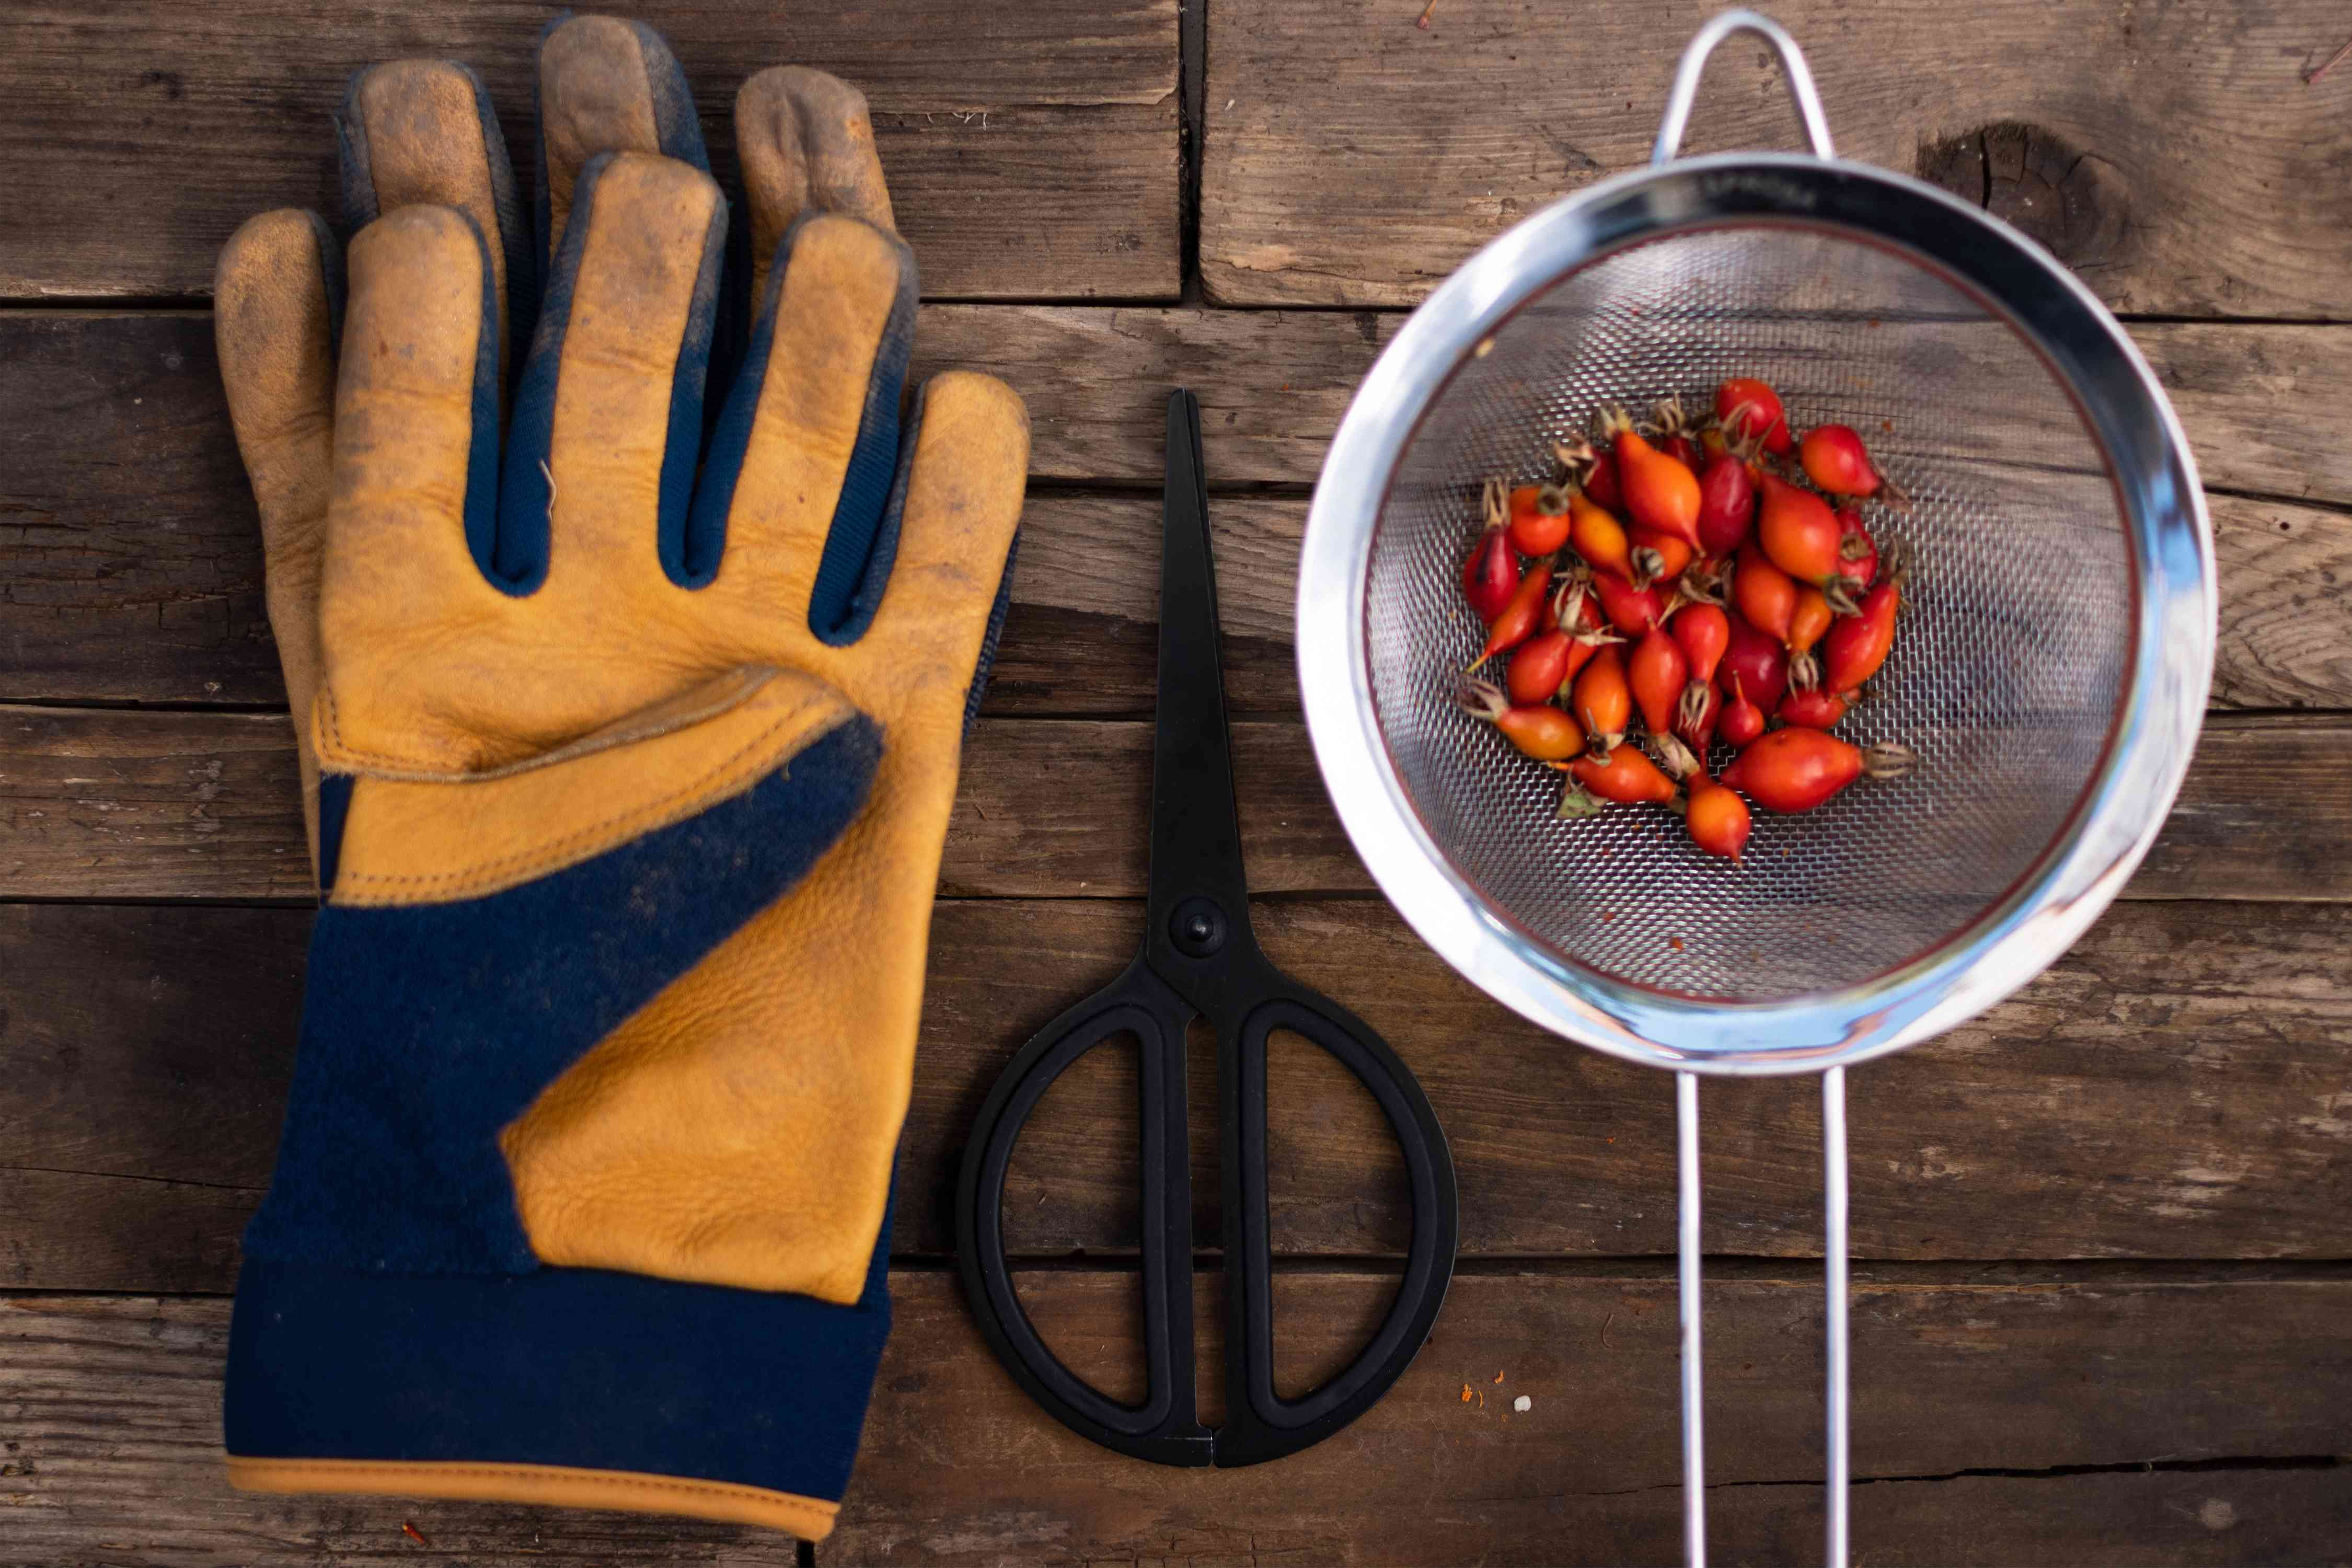 Materials and tools to harvest rose hips